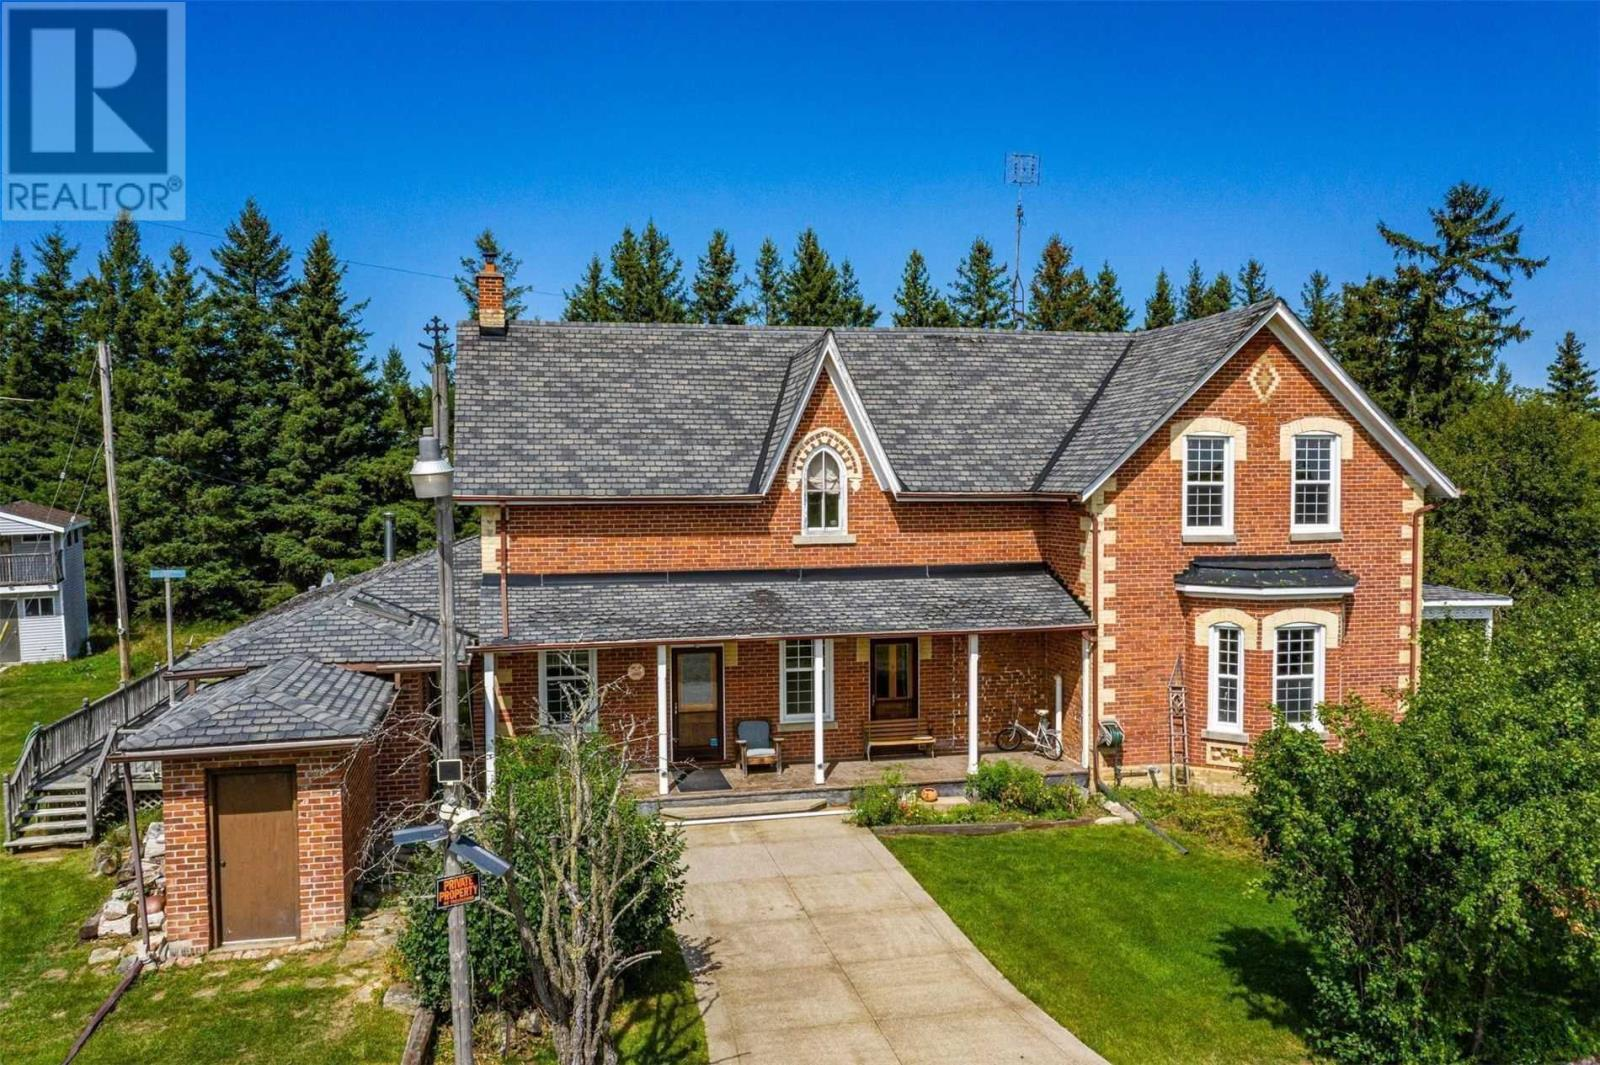 13064 Mclaughlin Rd, Caledon, Ontario  L7C 2A2 - Photo 4 - W4944388